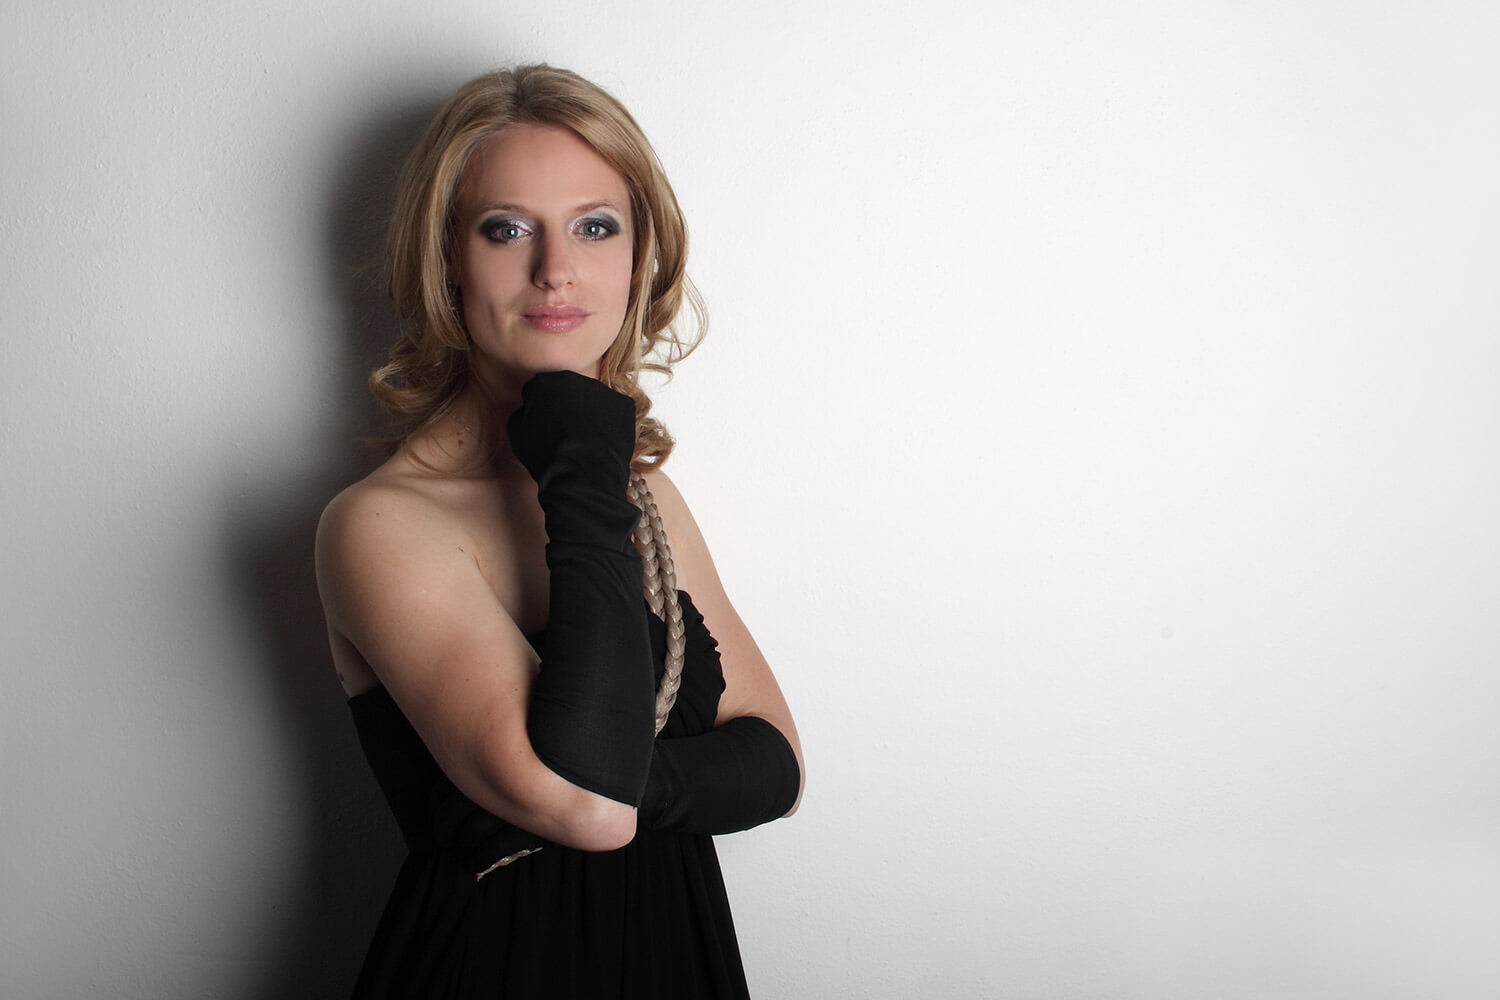 female business portrait in a black dress and gloves on a light background